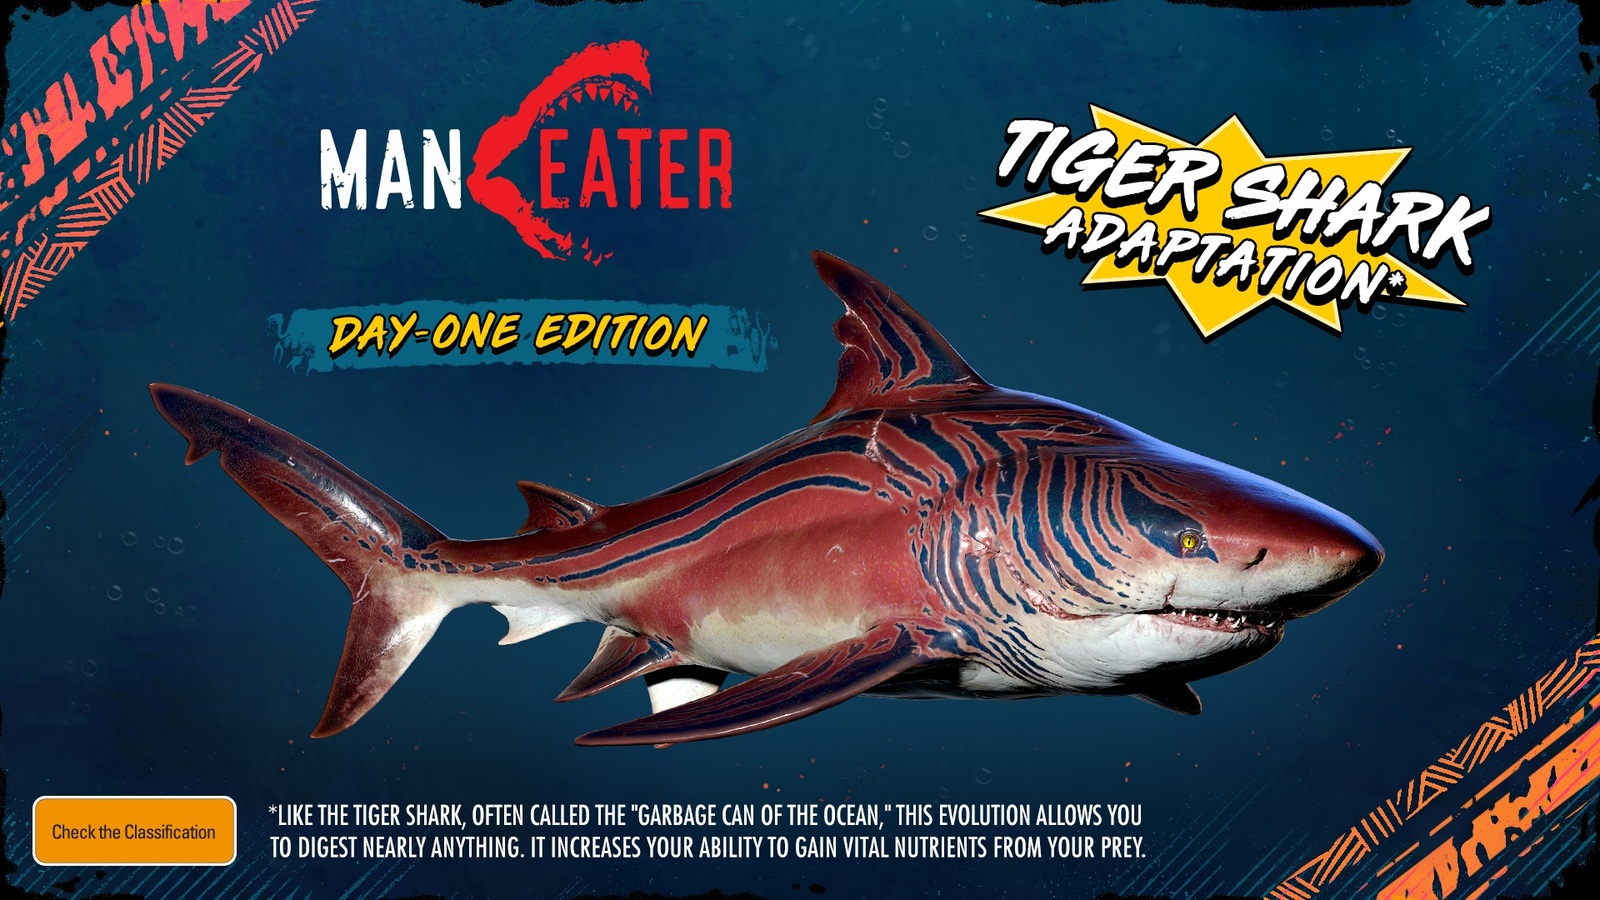 Maneater Day One Edition for Xbox One image